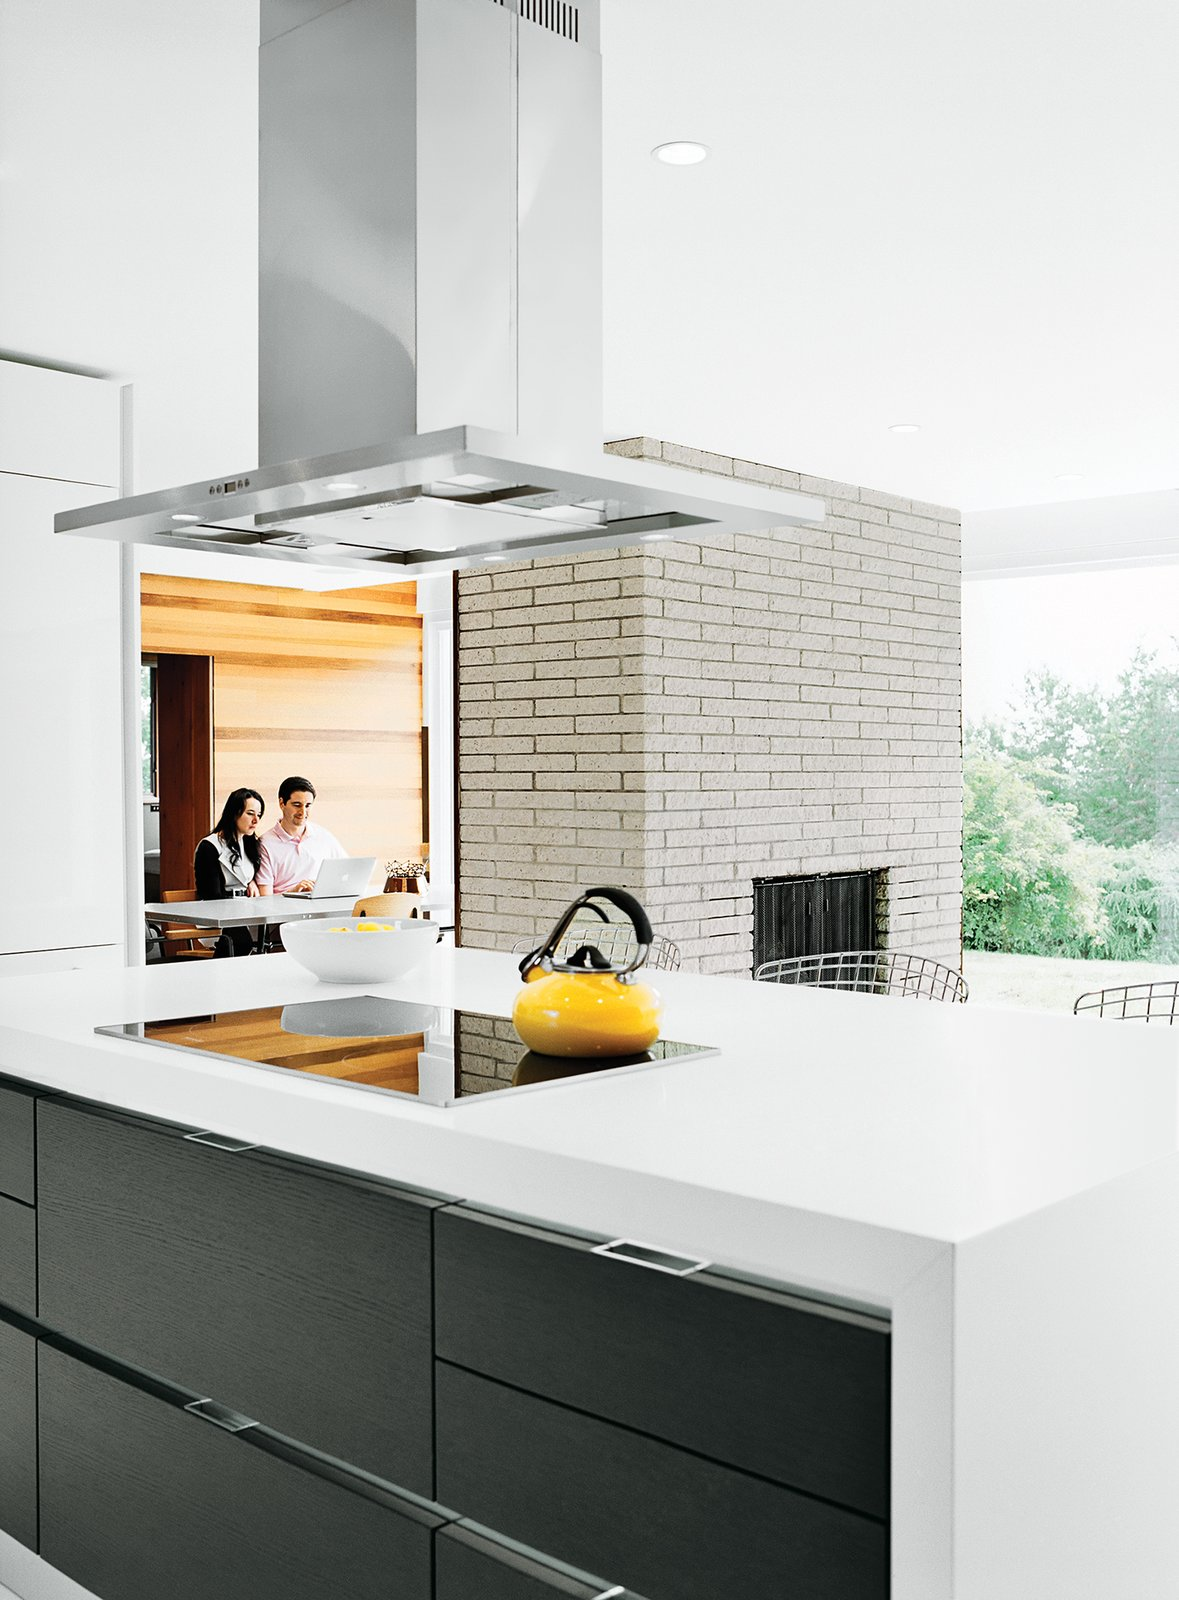 Kitchen, Range Hood, and Cooktops The cooktop and oven are Miele, the counter-top is Caesarstone, and the refrigerator is Liebherr.  Renovations